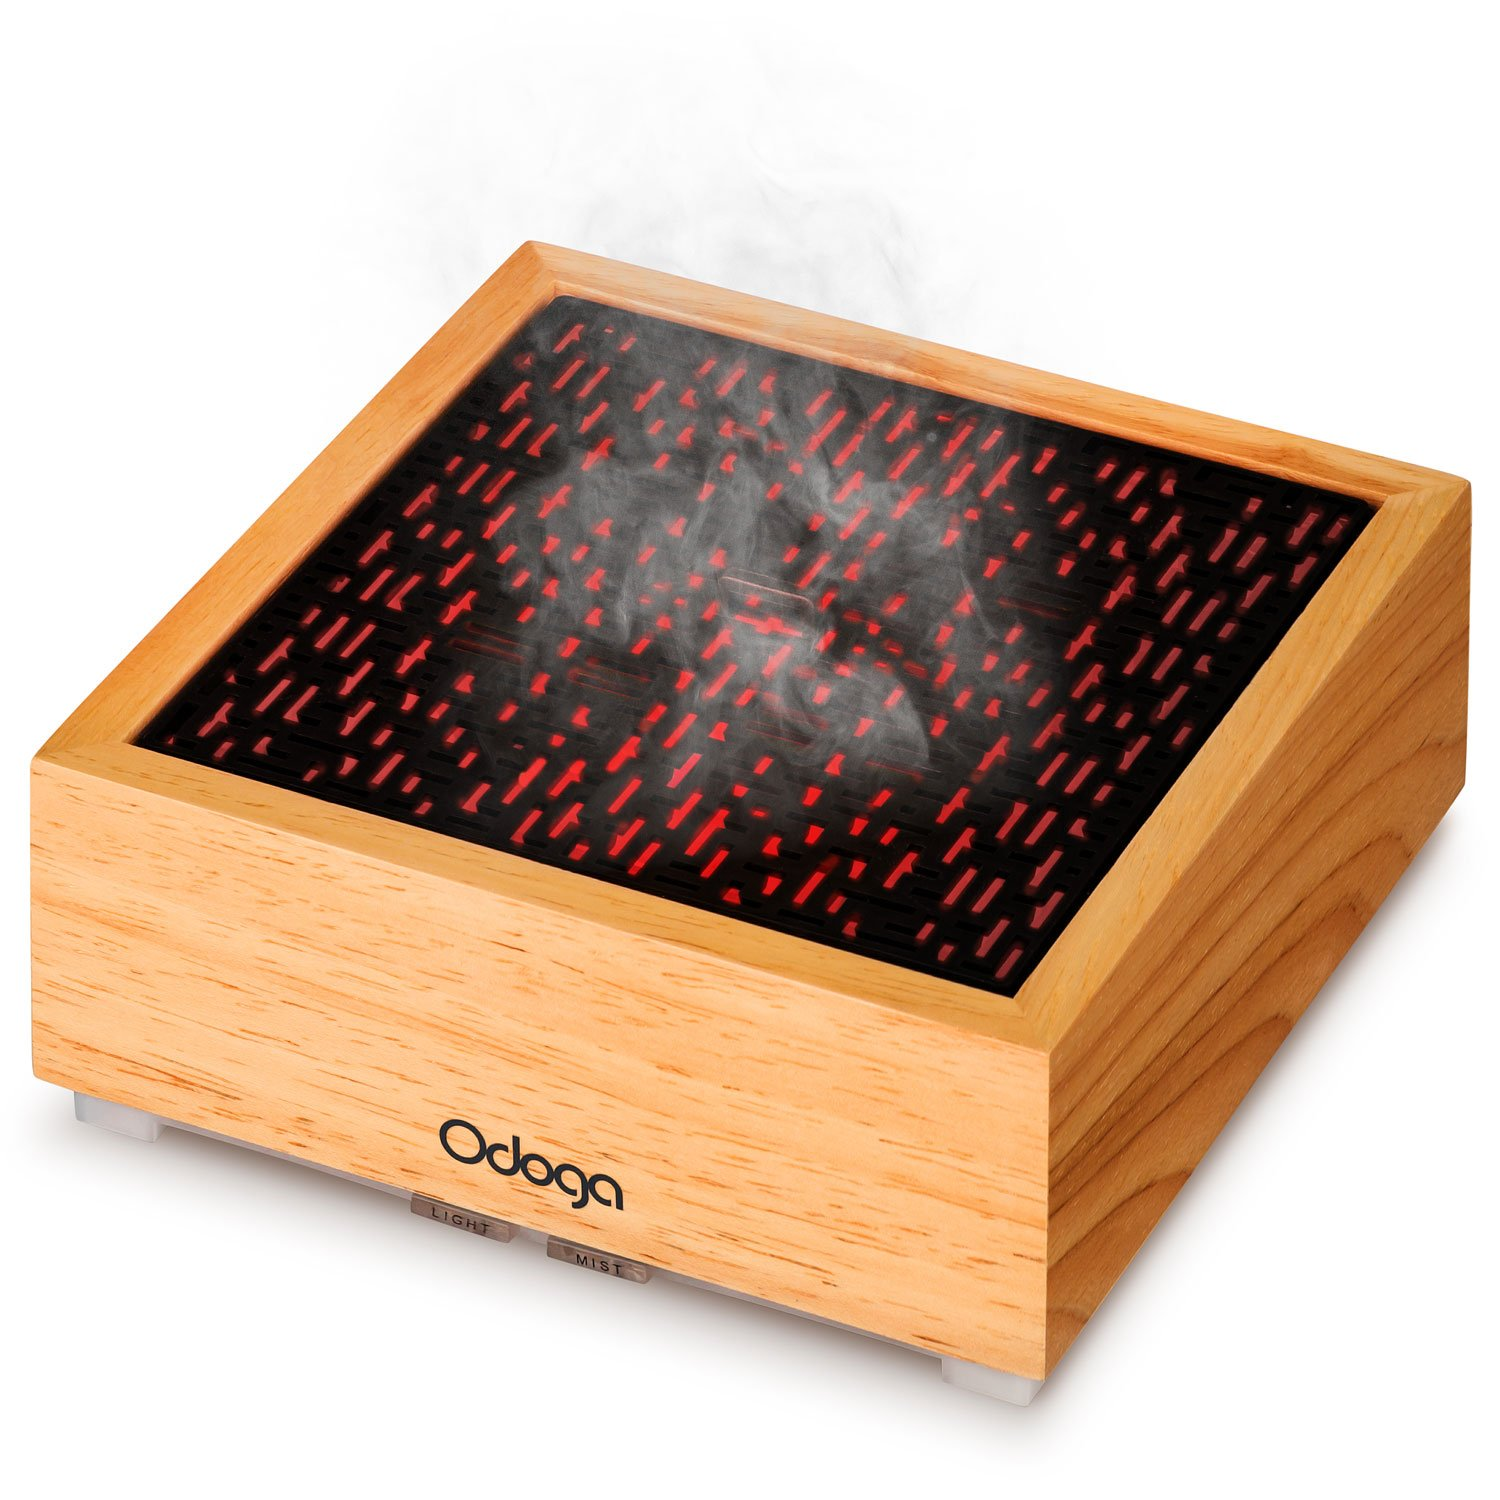 Odoga Aromatherapy Essential Oil Diffuser, 90 ml Real Wood Ultrasonic Whisper Quiet Cool Mist Humidifier Features Red and Warm White Flame Light Effect Atrium